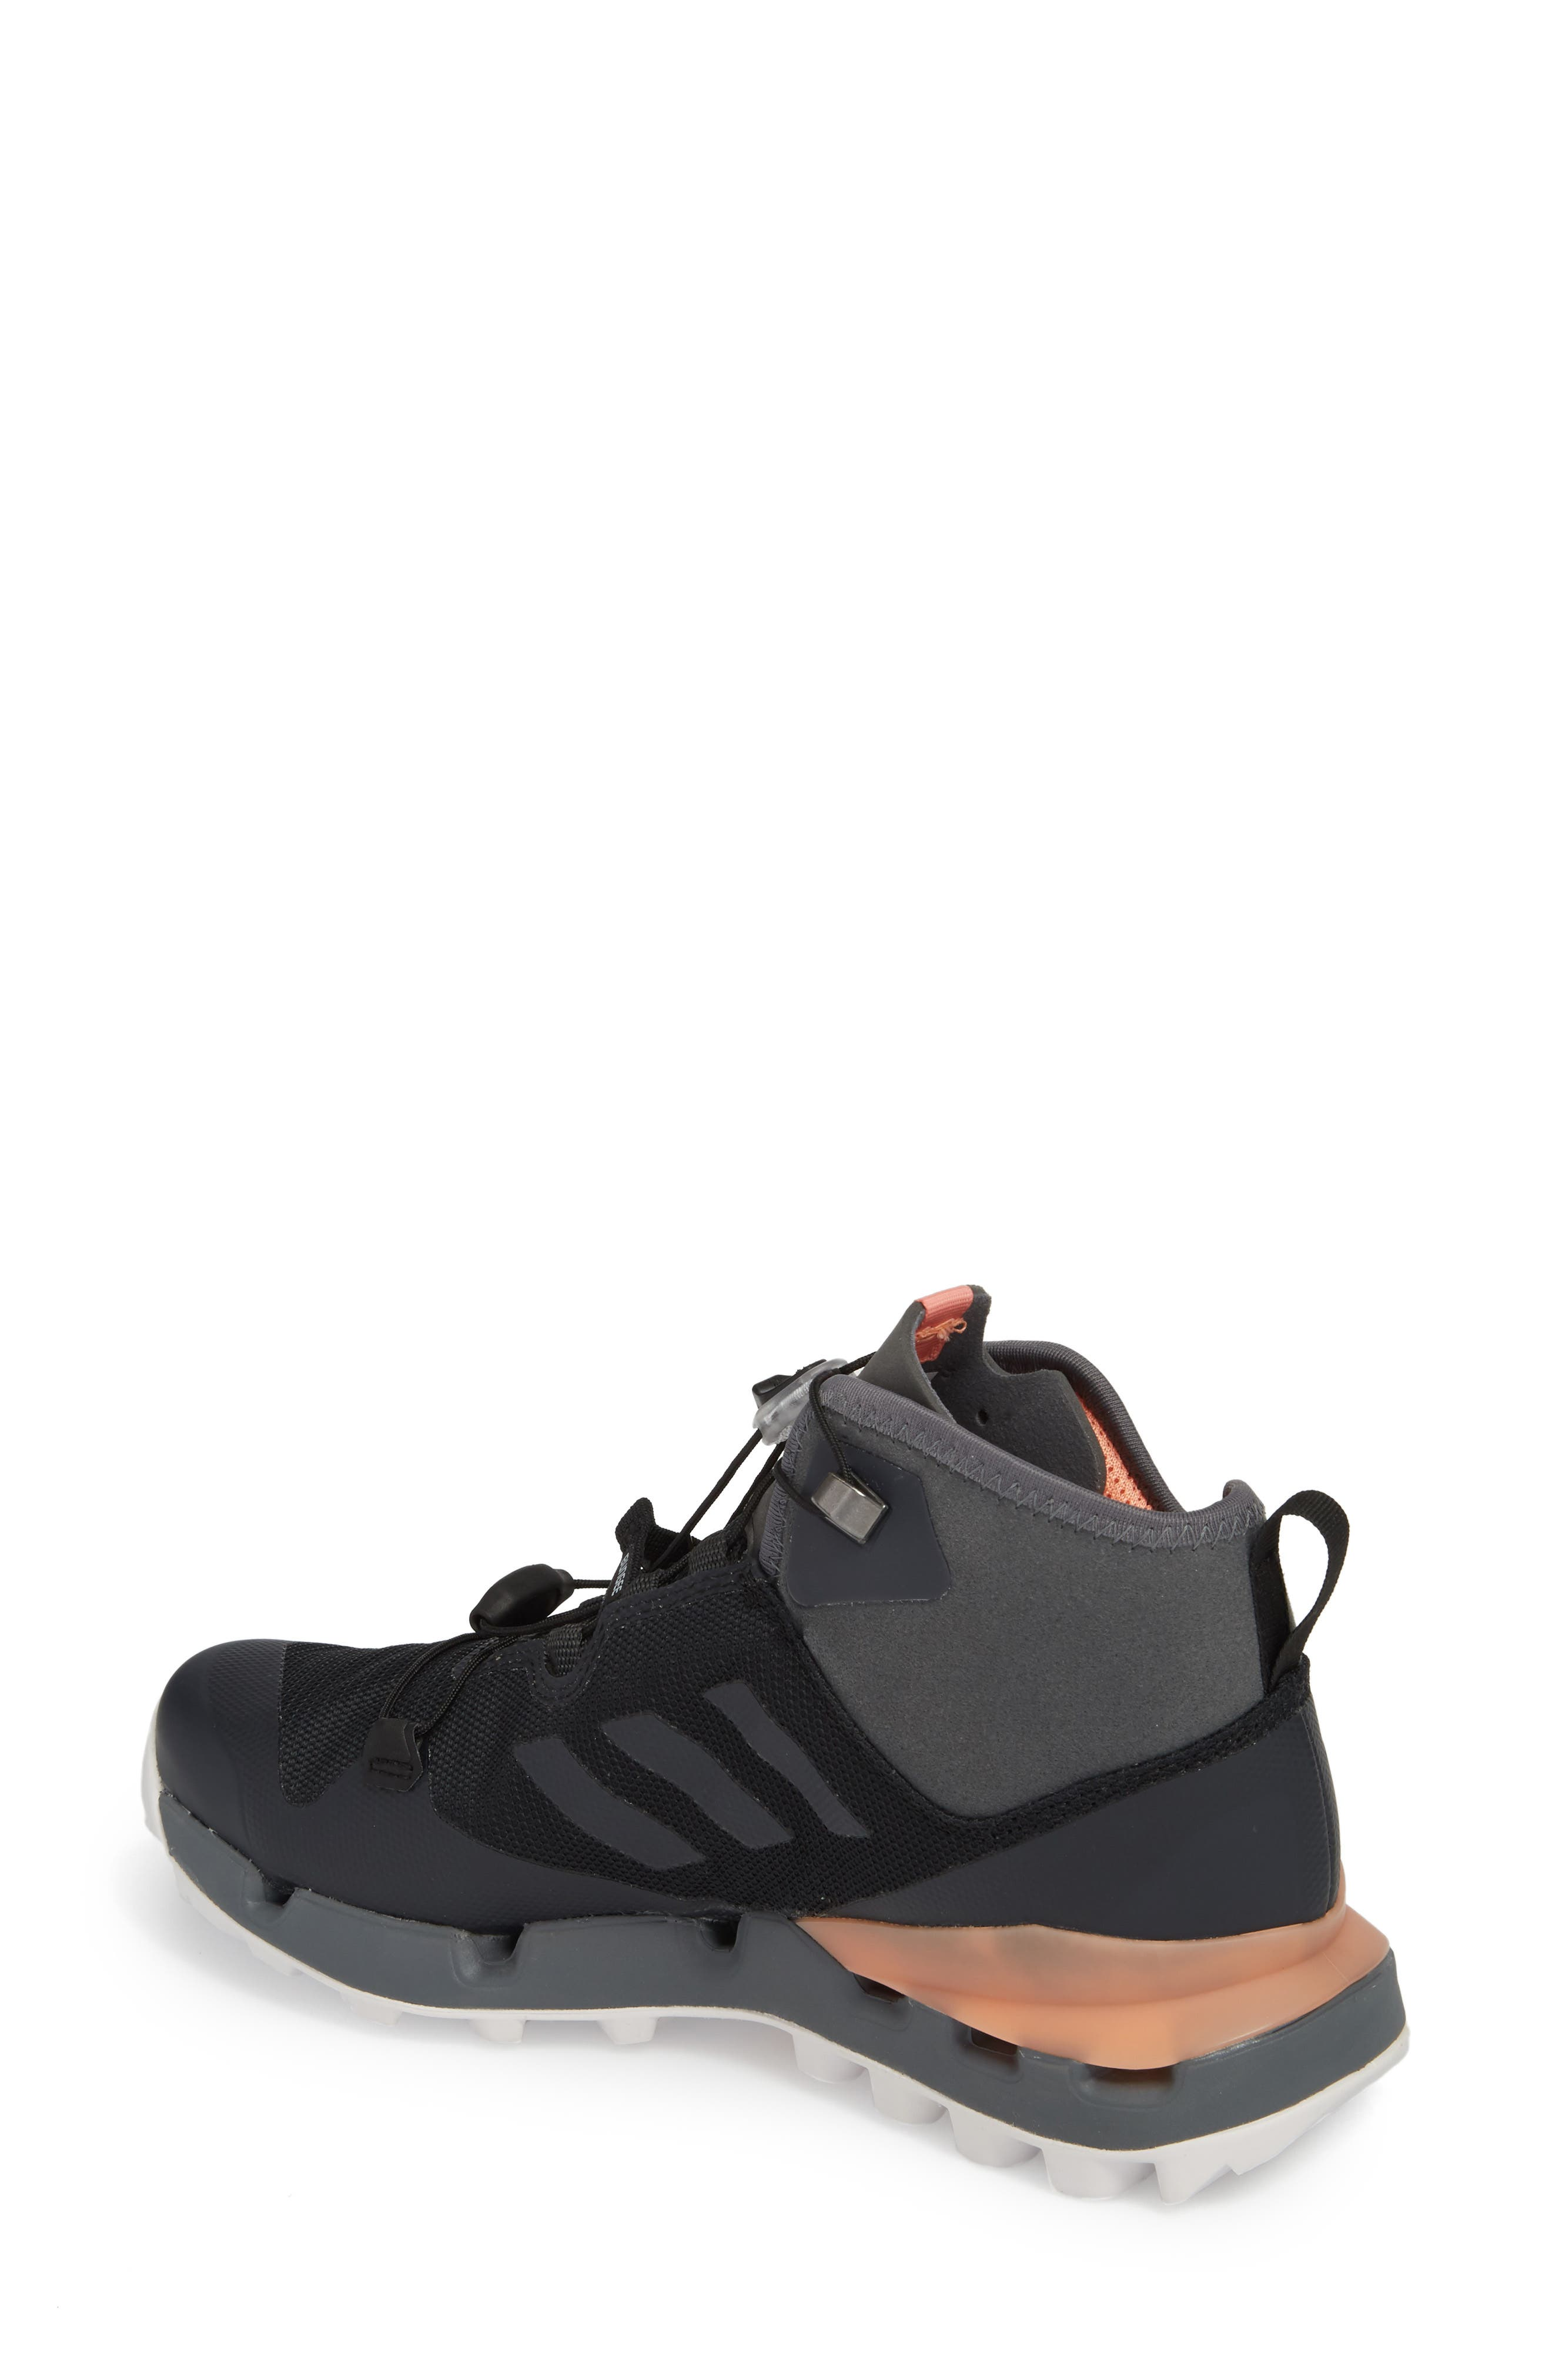 Terrex Fast Mid Gore-Tex<sup>®</sup> Hiking Boot,                             Alternate thumbnail 2, color,                             Black/ Grey Five/ Chalk Coral